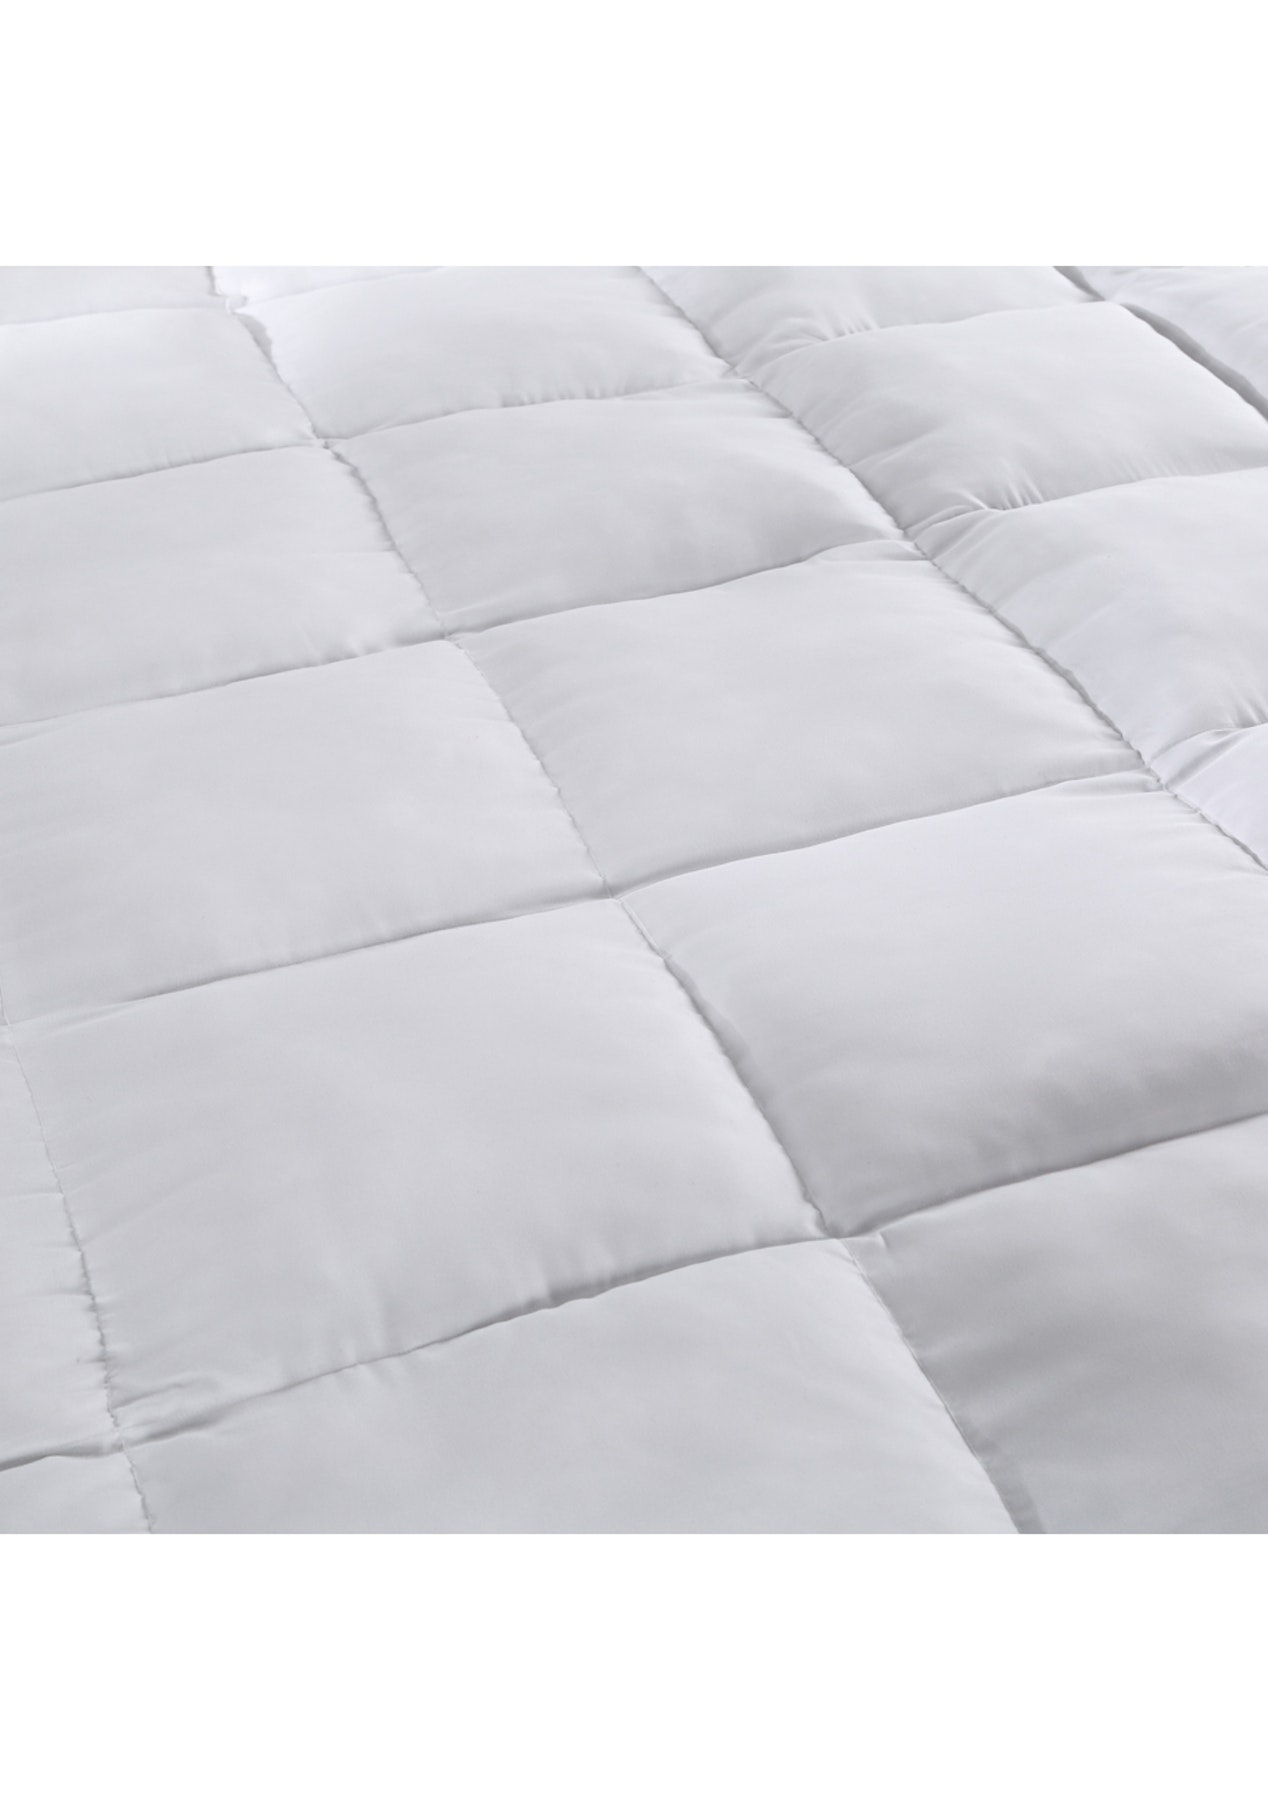 the buy in to hotel best comfort pillows pillow bamboo king comforter